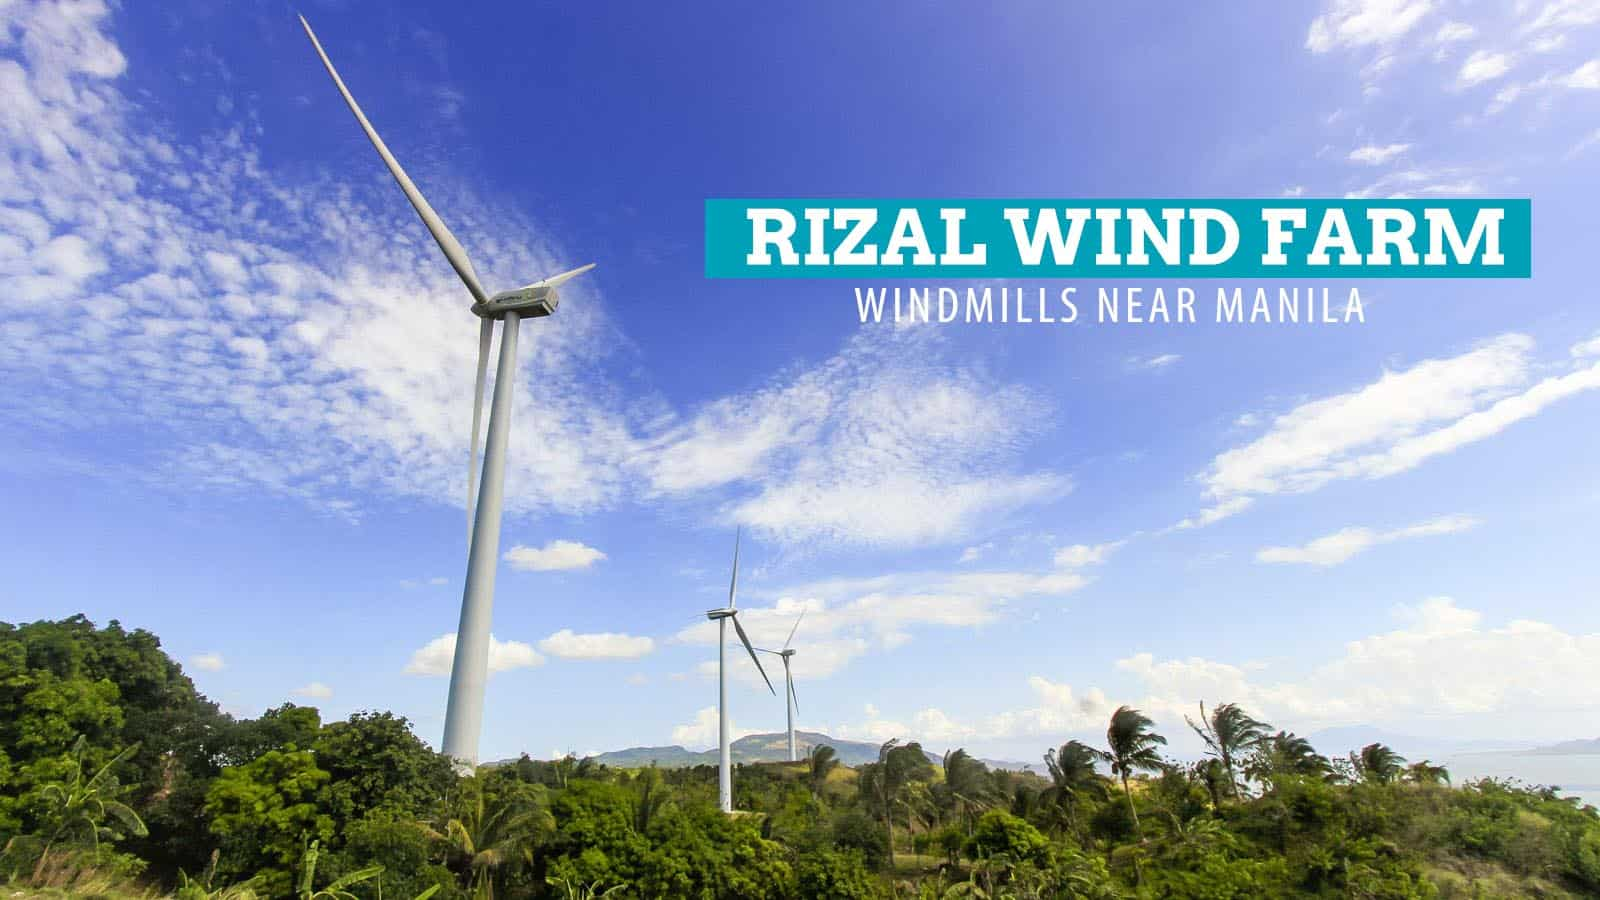 Pililla Wind Farm In Rizal Windmills Near Manila The Poor